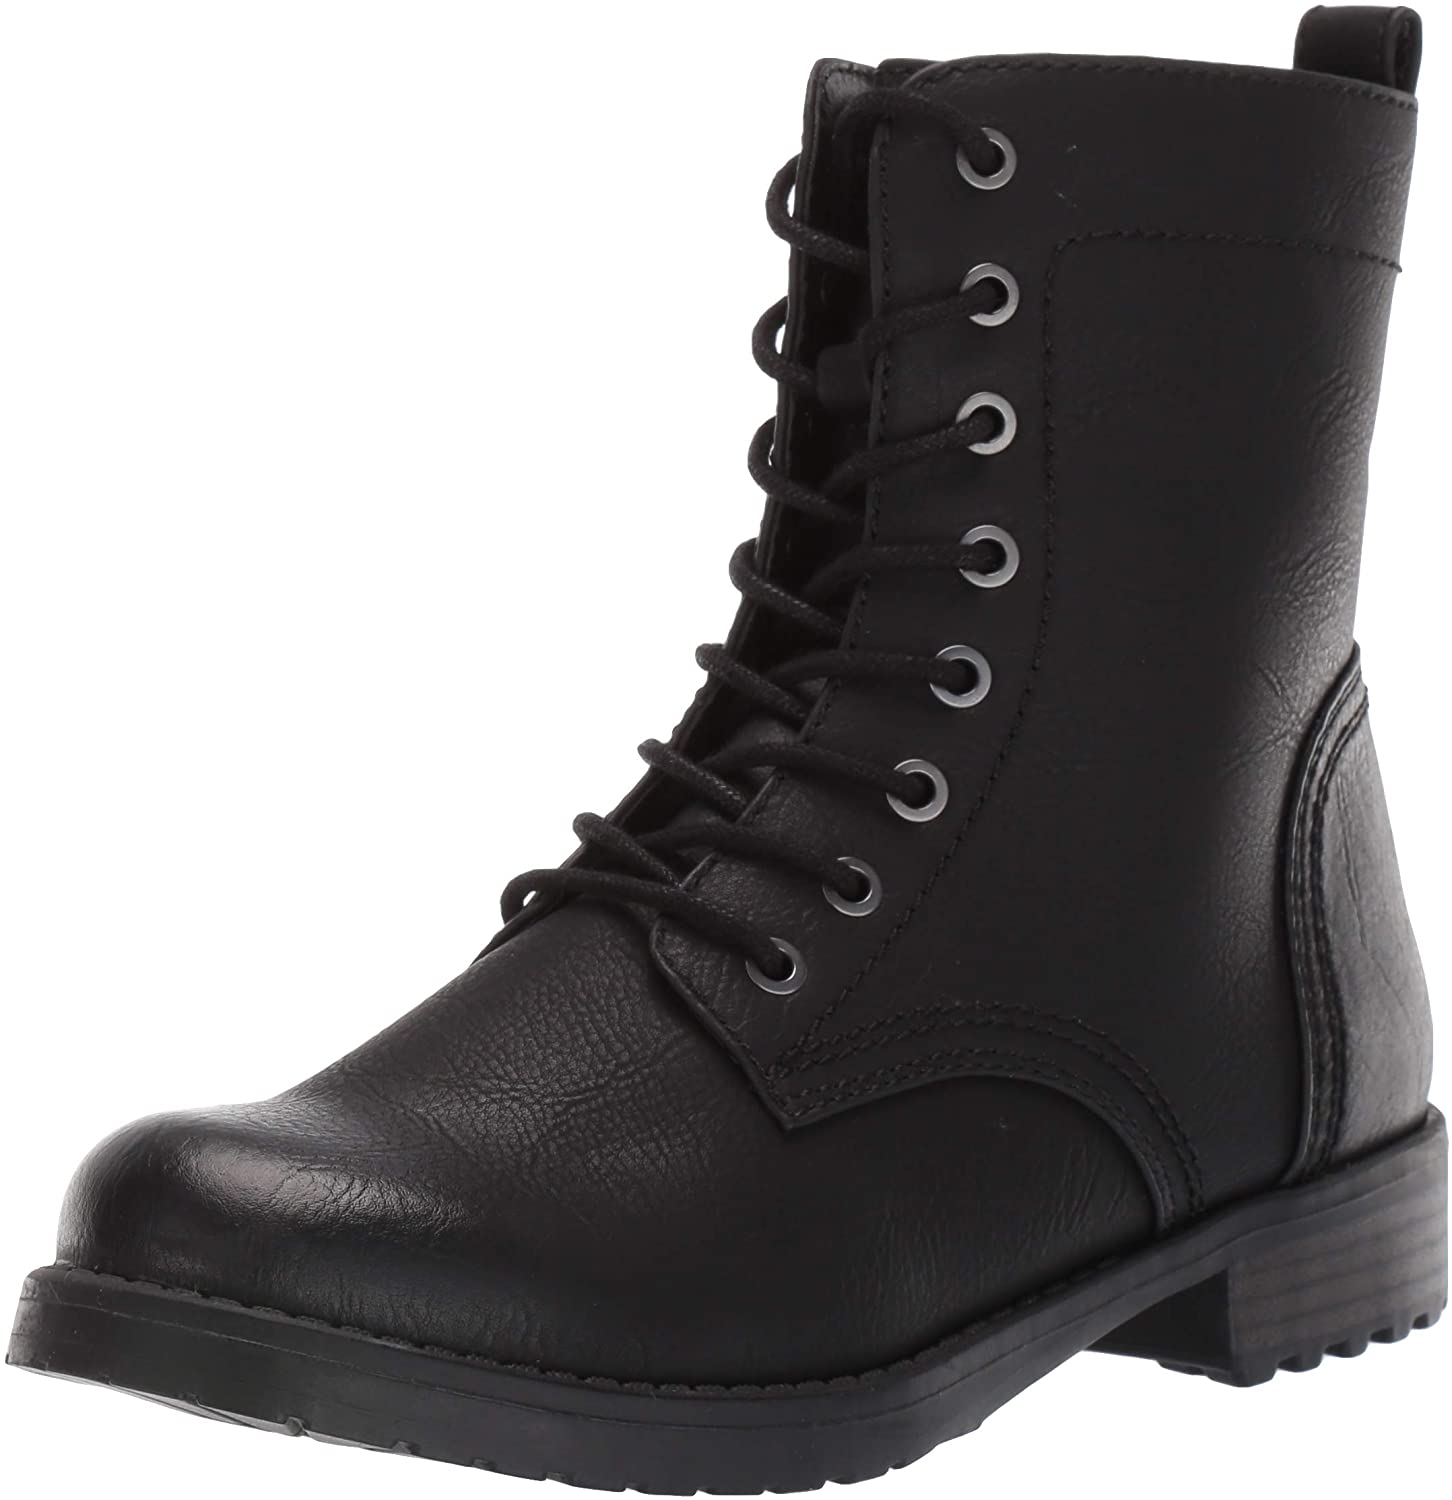 Female Black Combat Boots